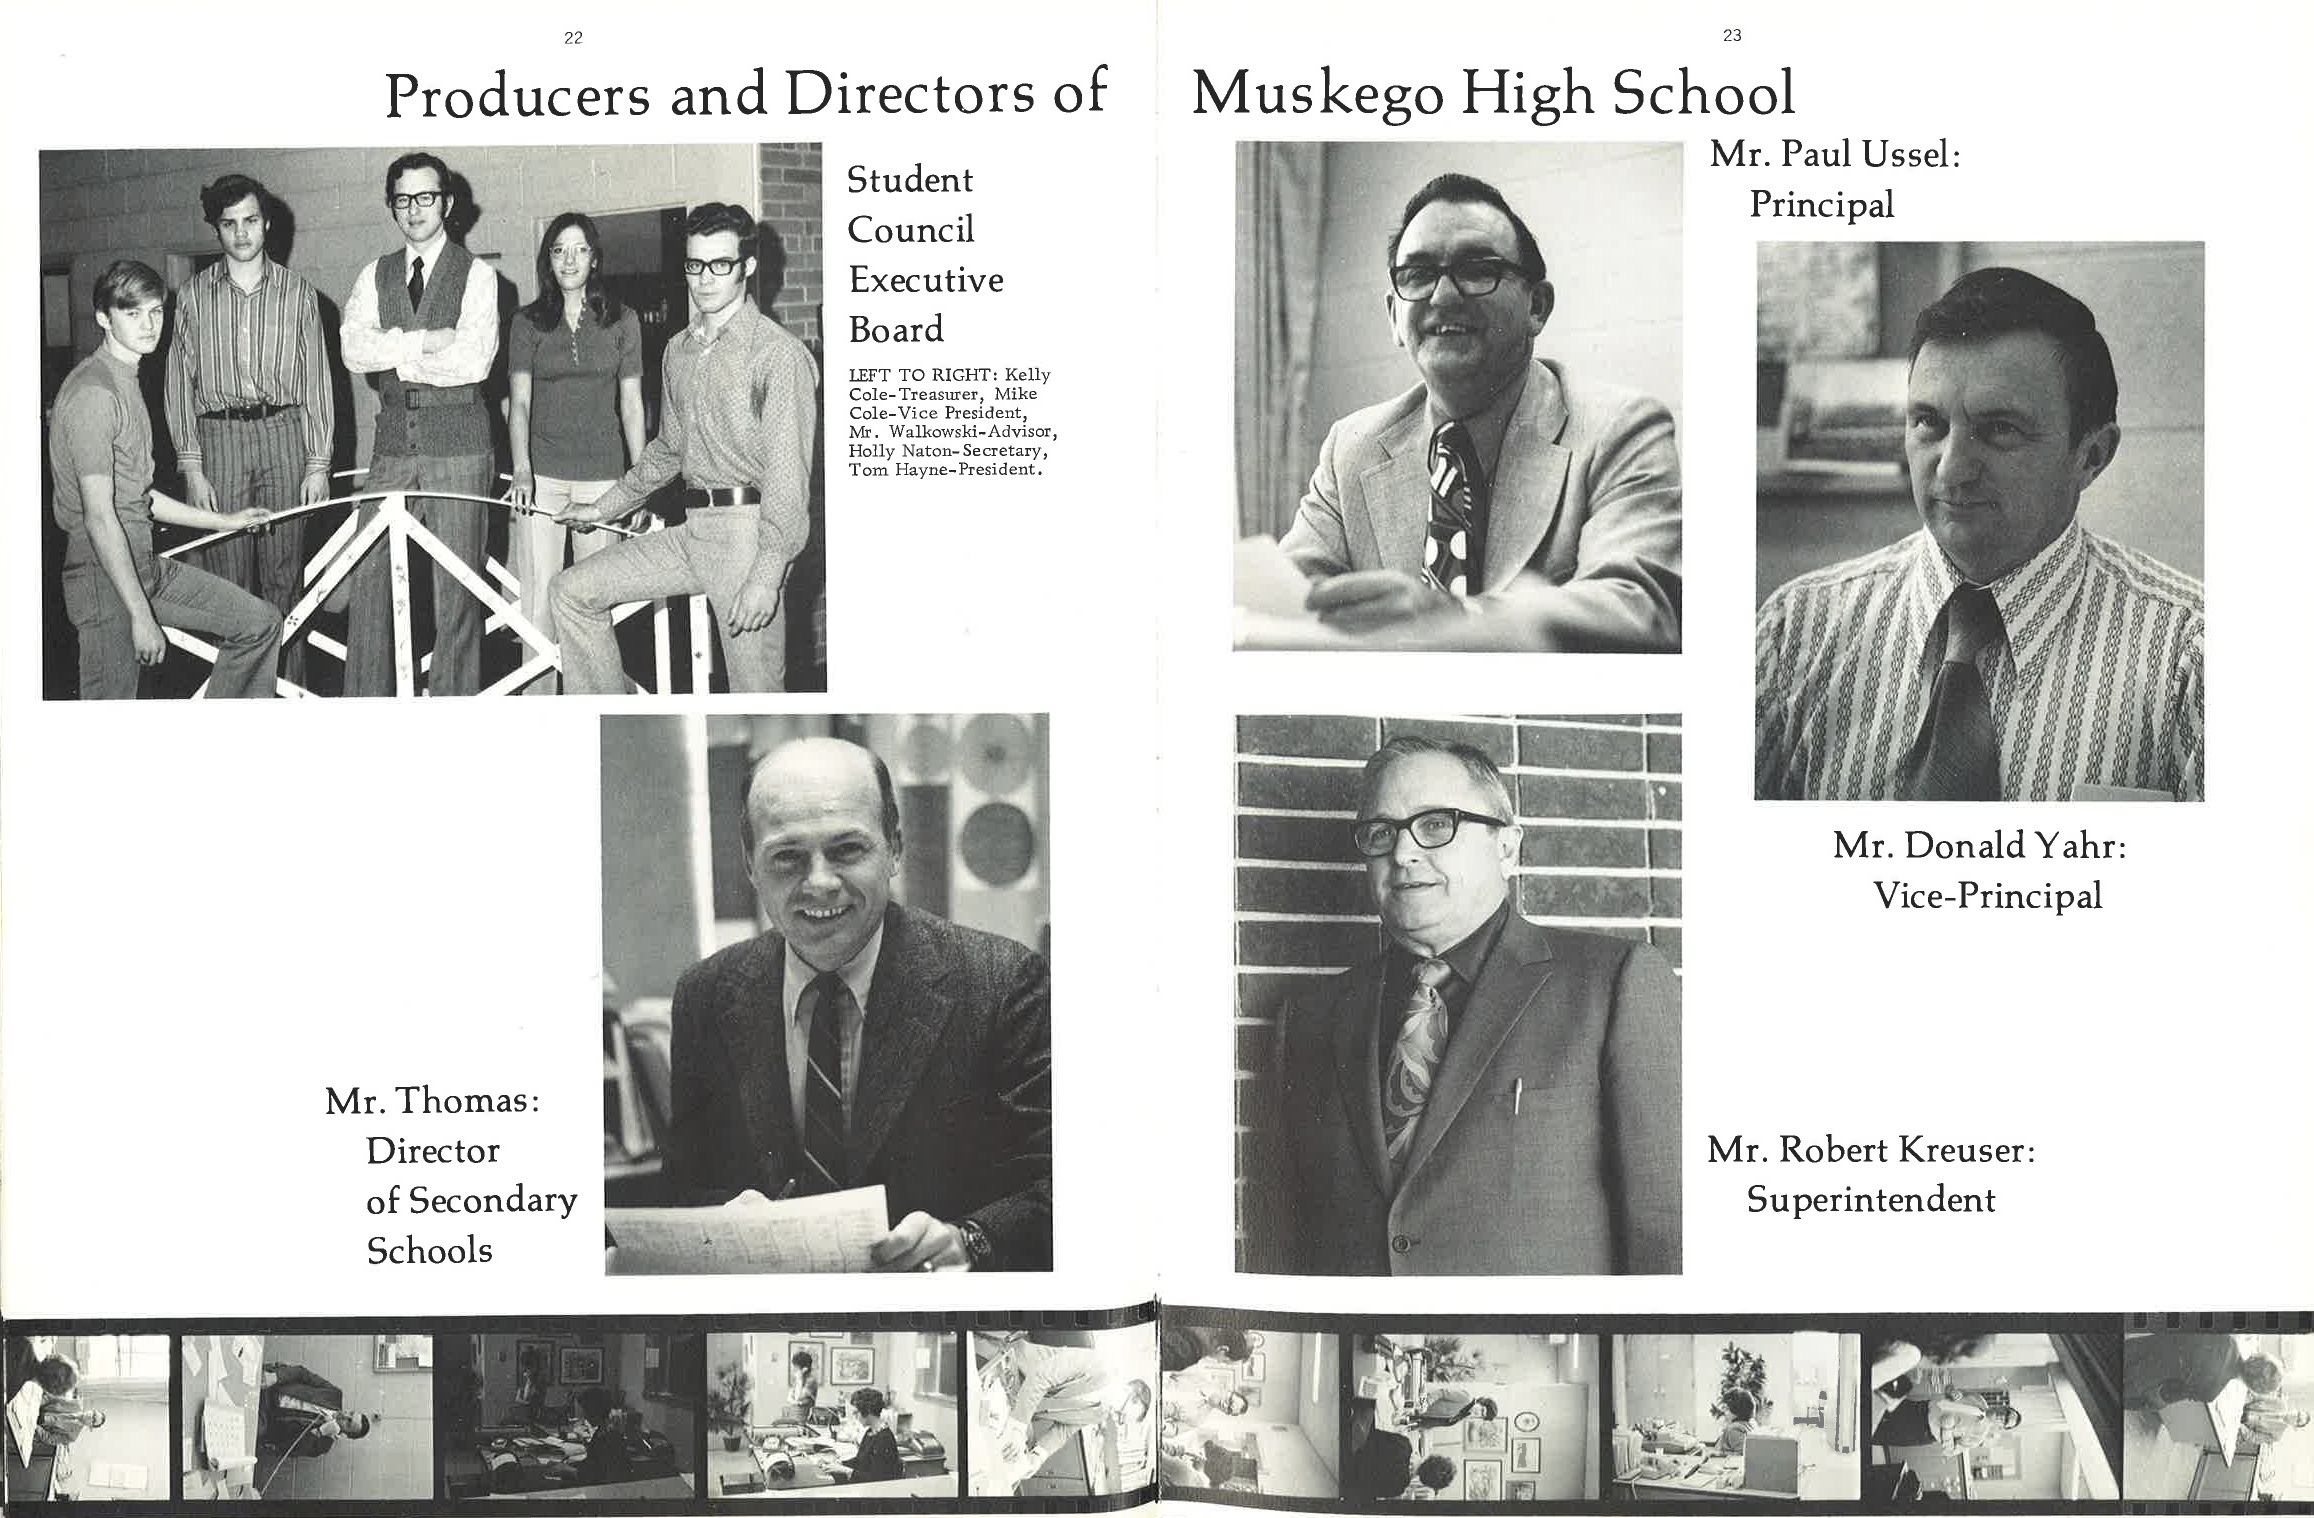 1972_Yearbook_22-23.jpg